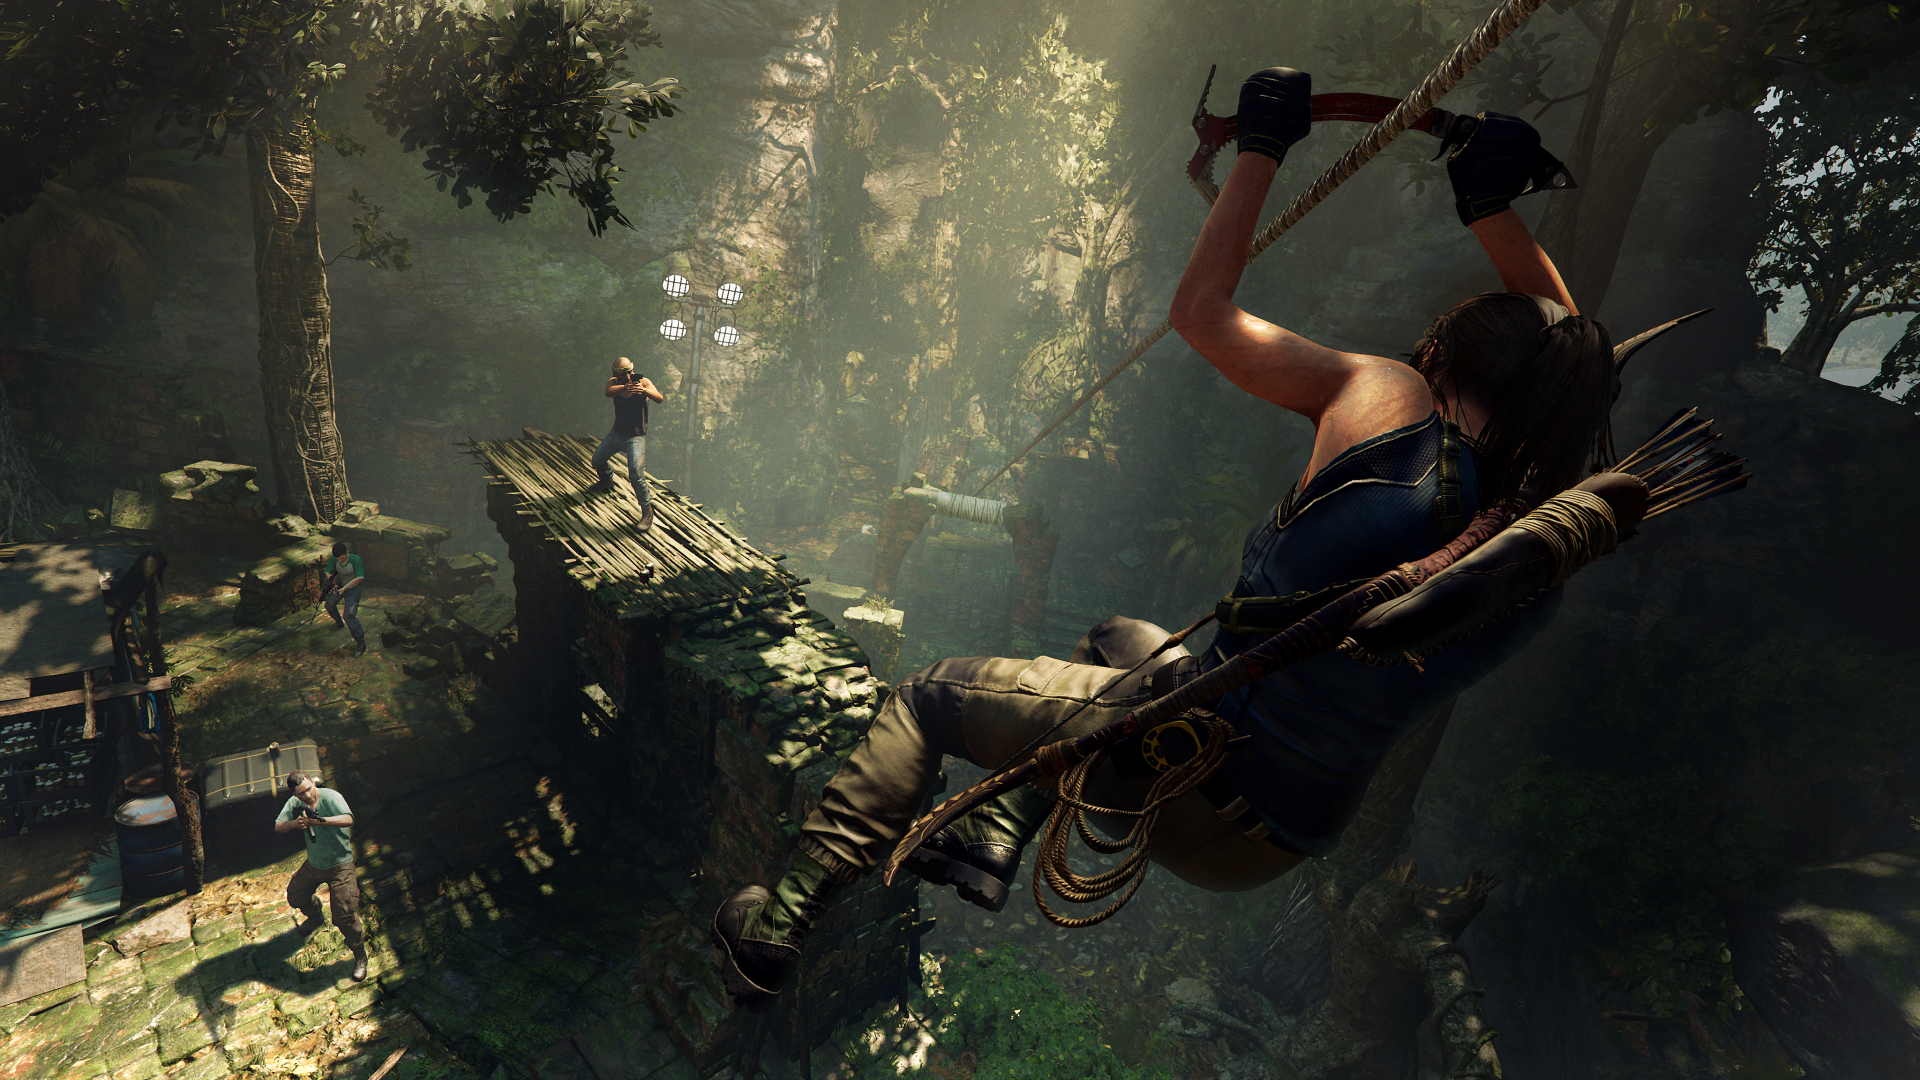 shadow-of-the-tomb-raider-july-2018-preview-07